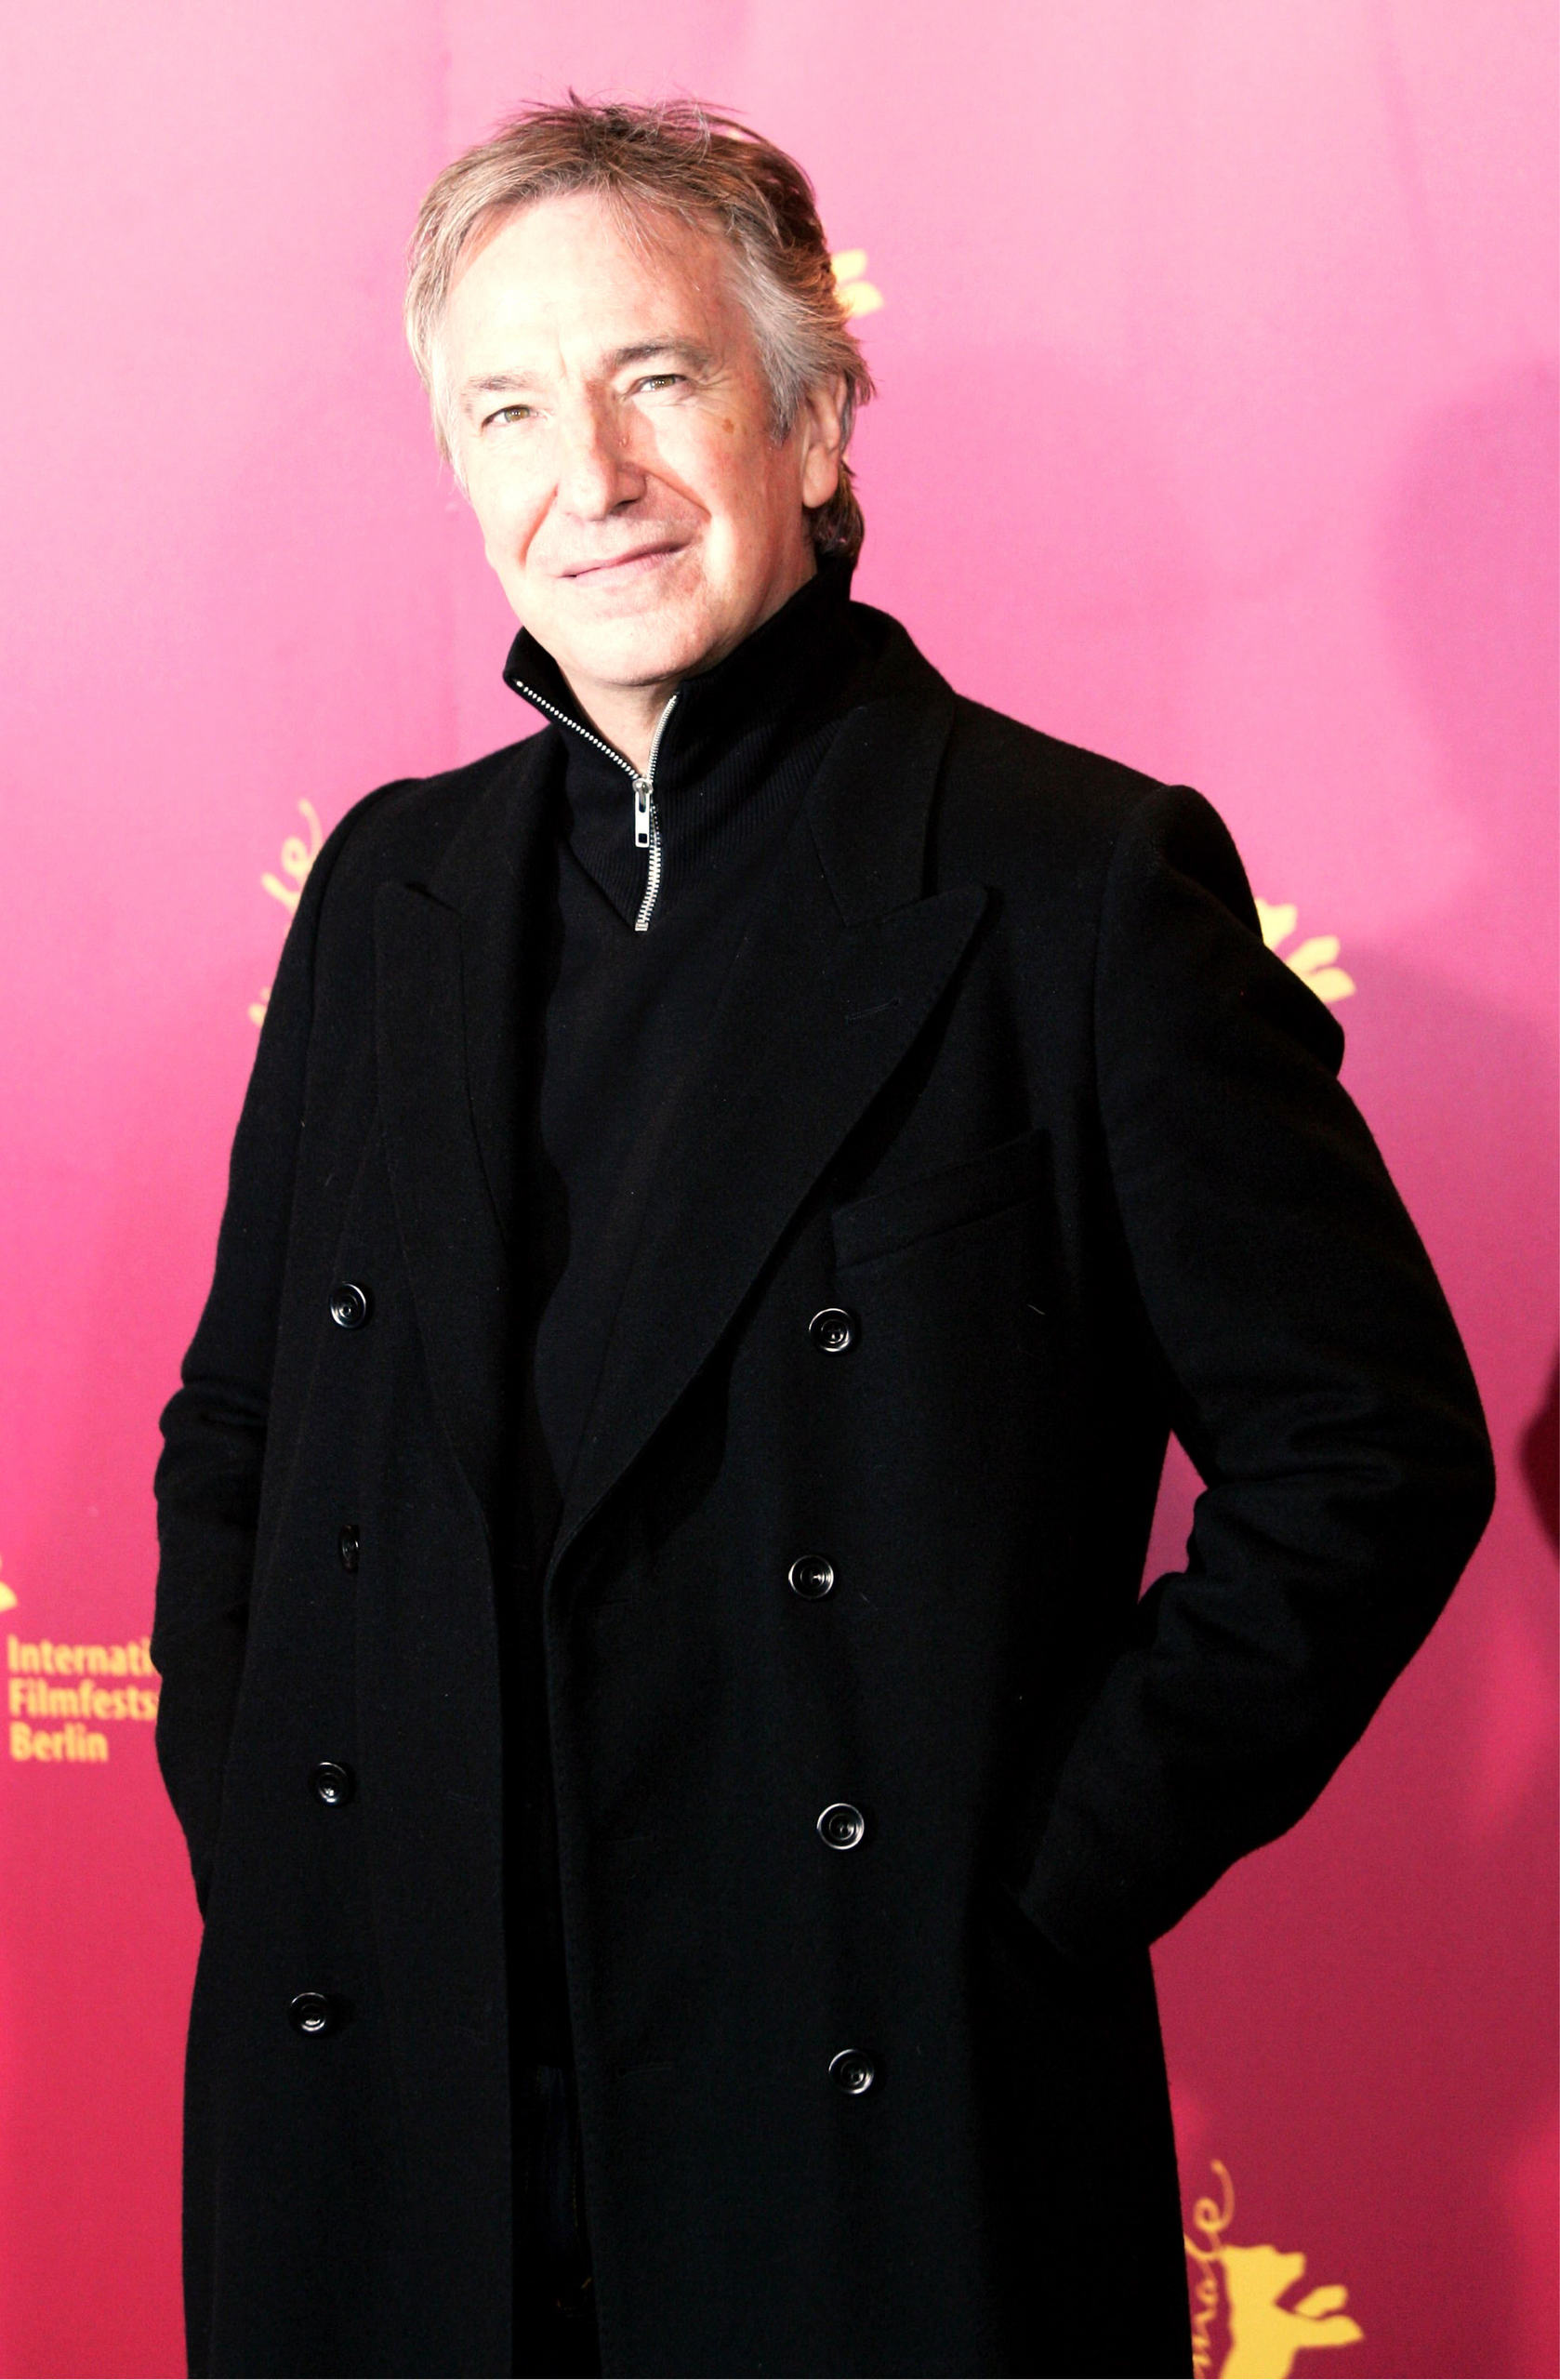 berlinale - alan rickman photo (6805870) - fanpop